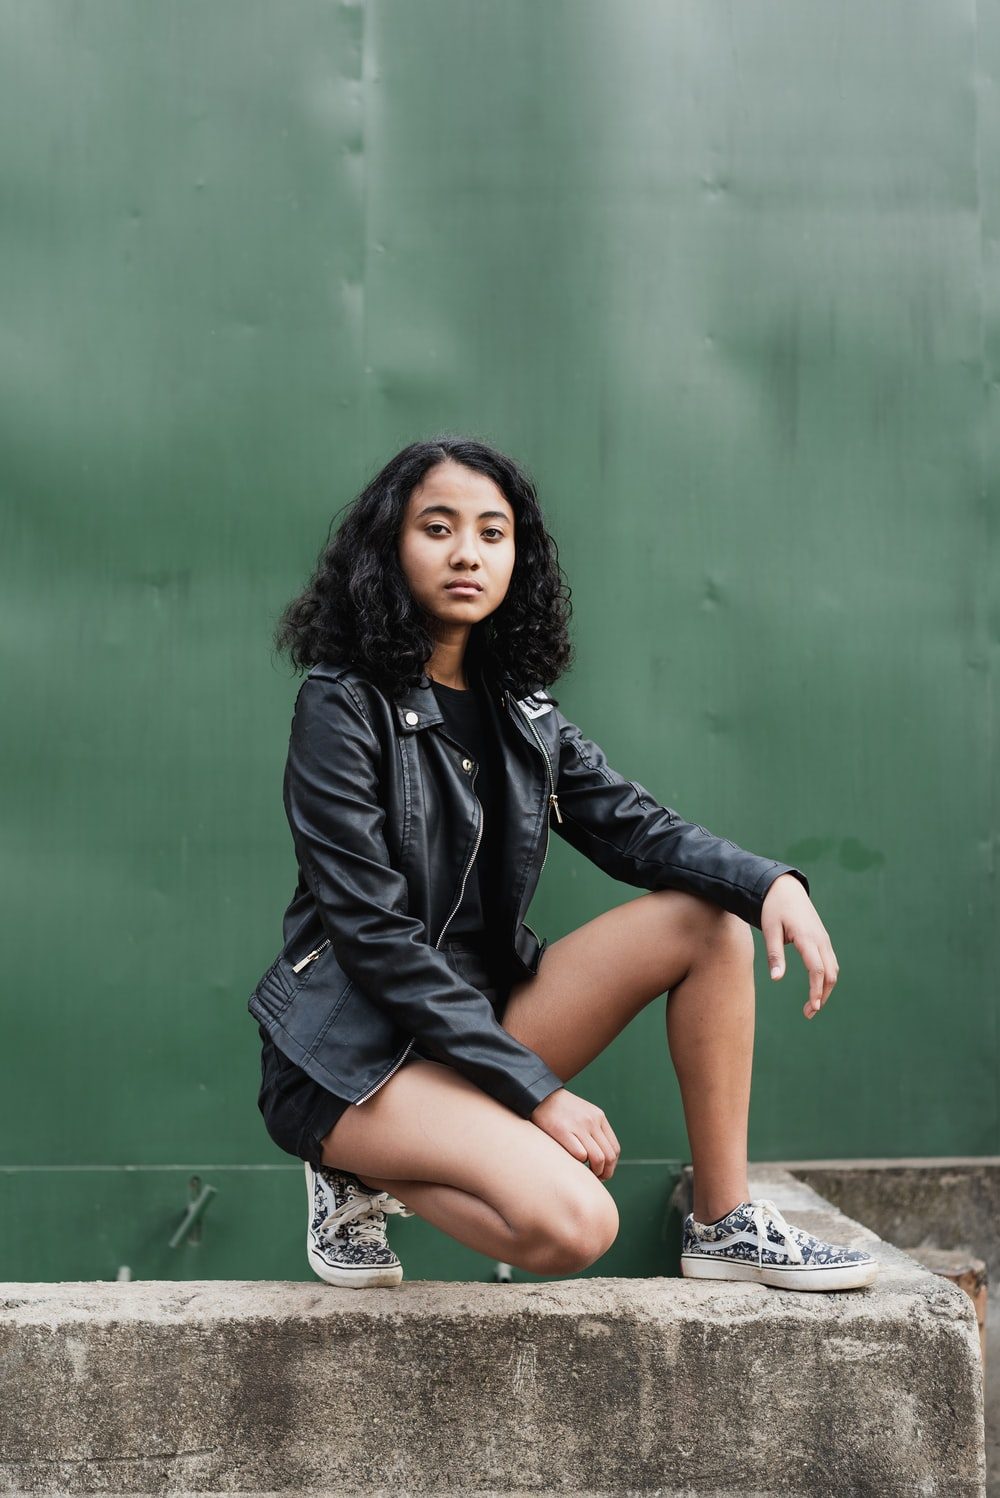 woman wearing black zip-up jacket and short shorts in sitting position during daytime